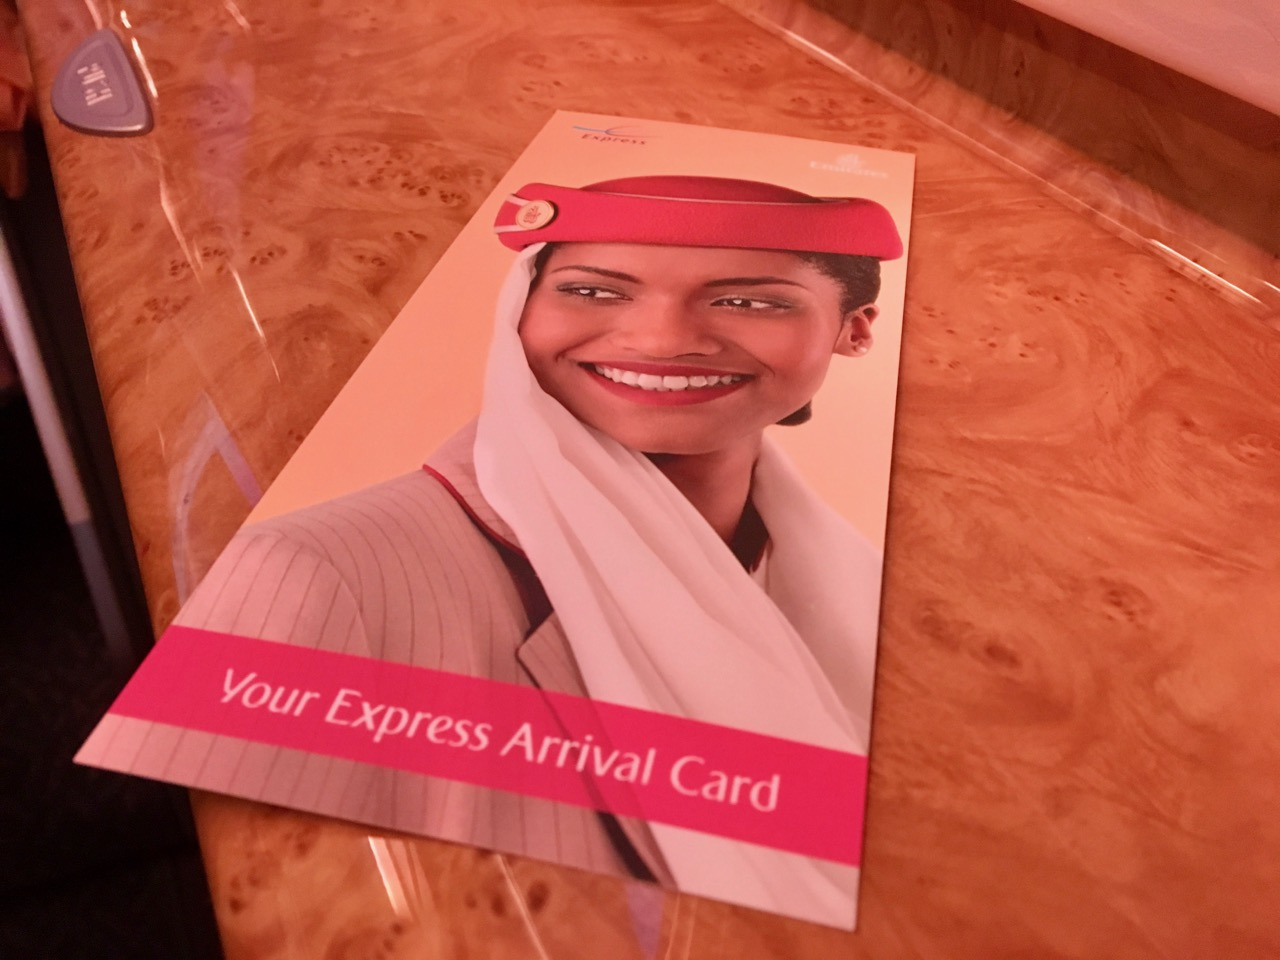 Emirates Express Arrivals Card